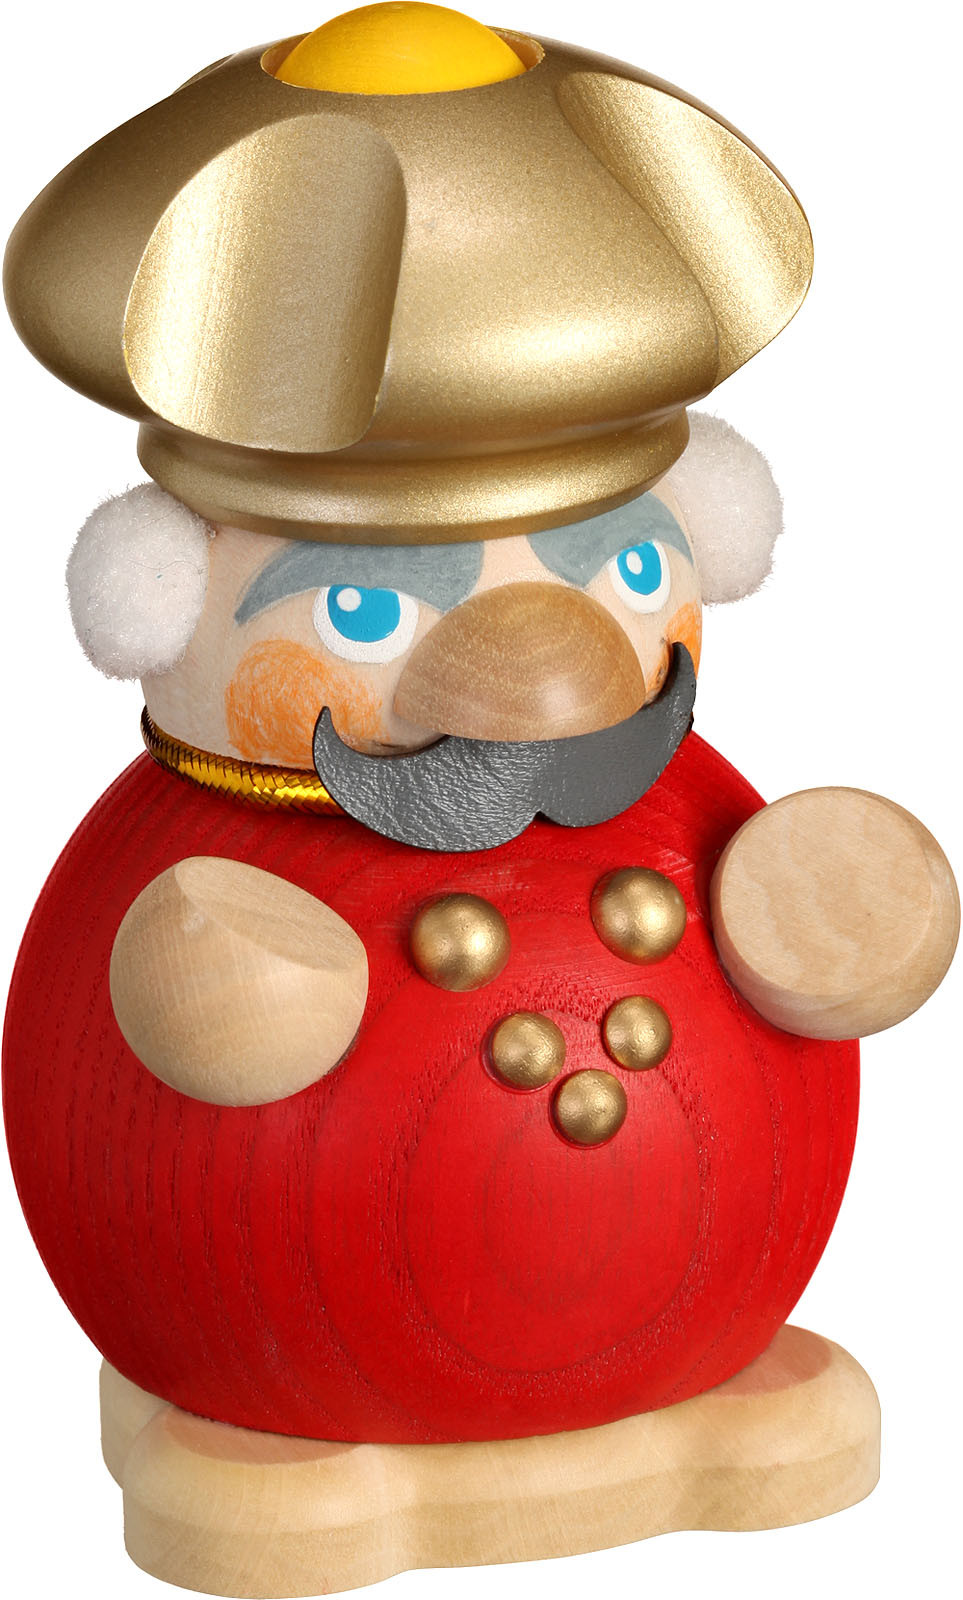 ball-shaped nutcracker king